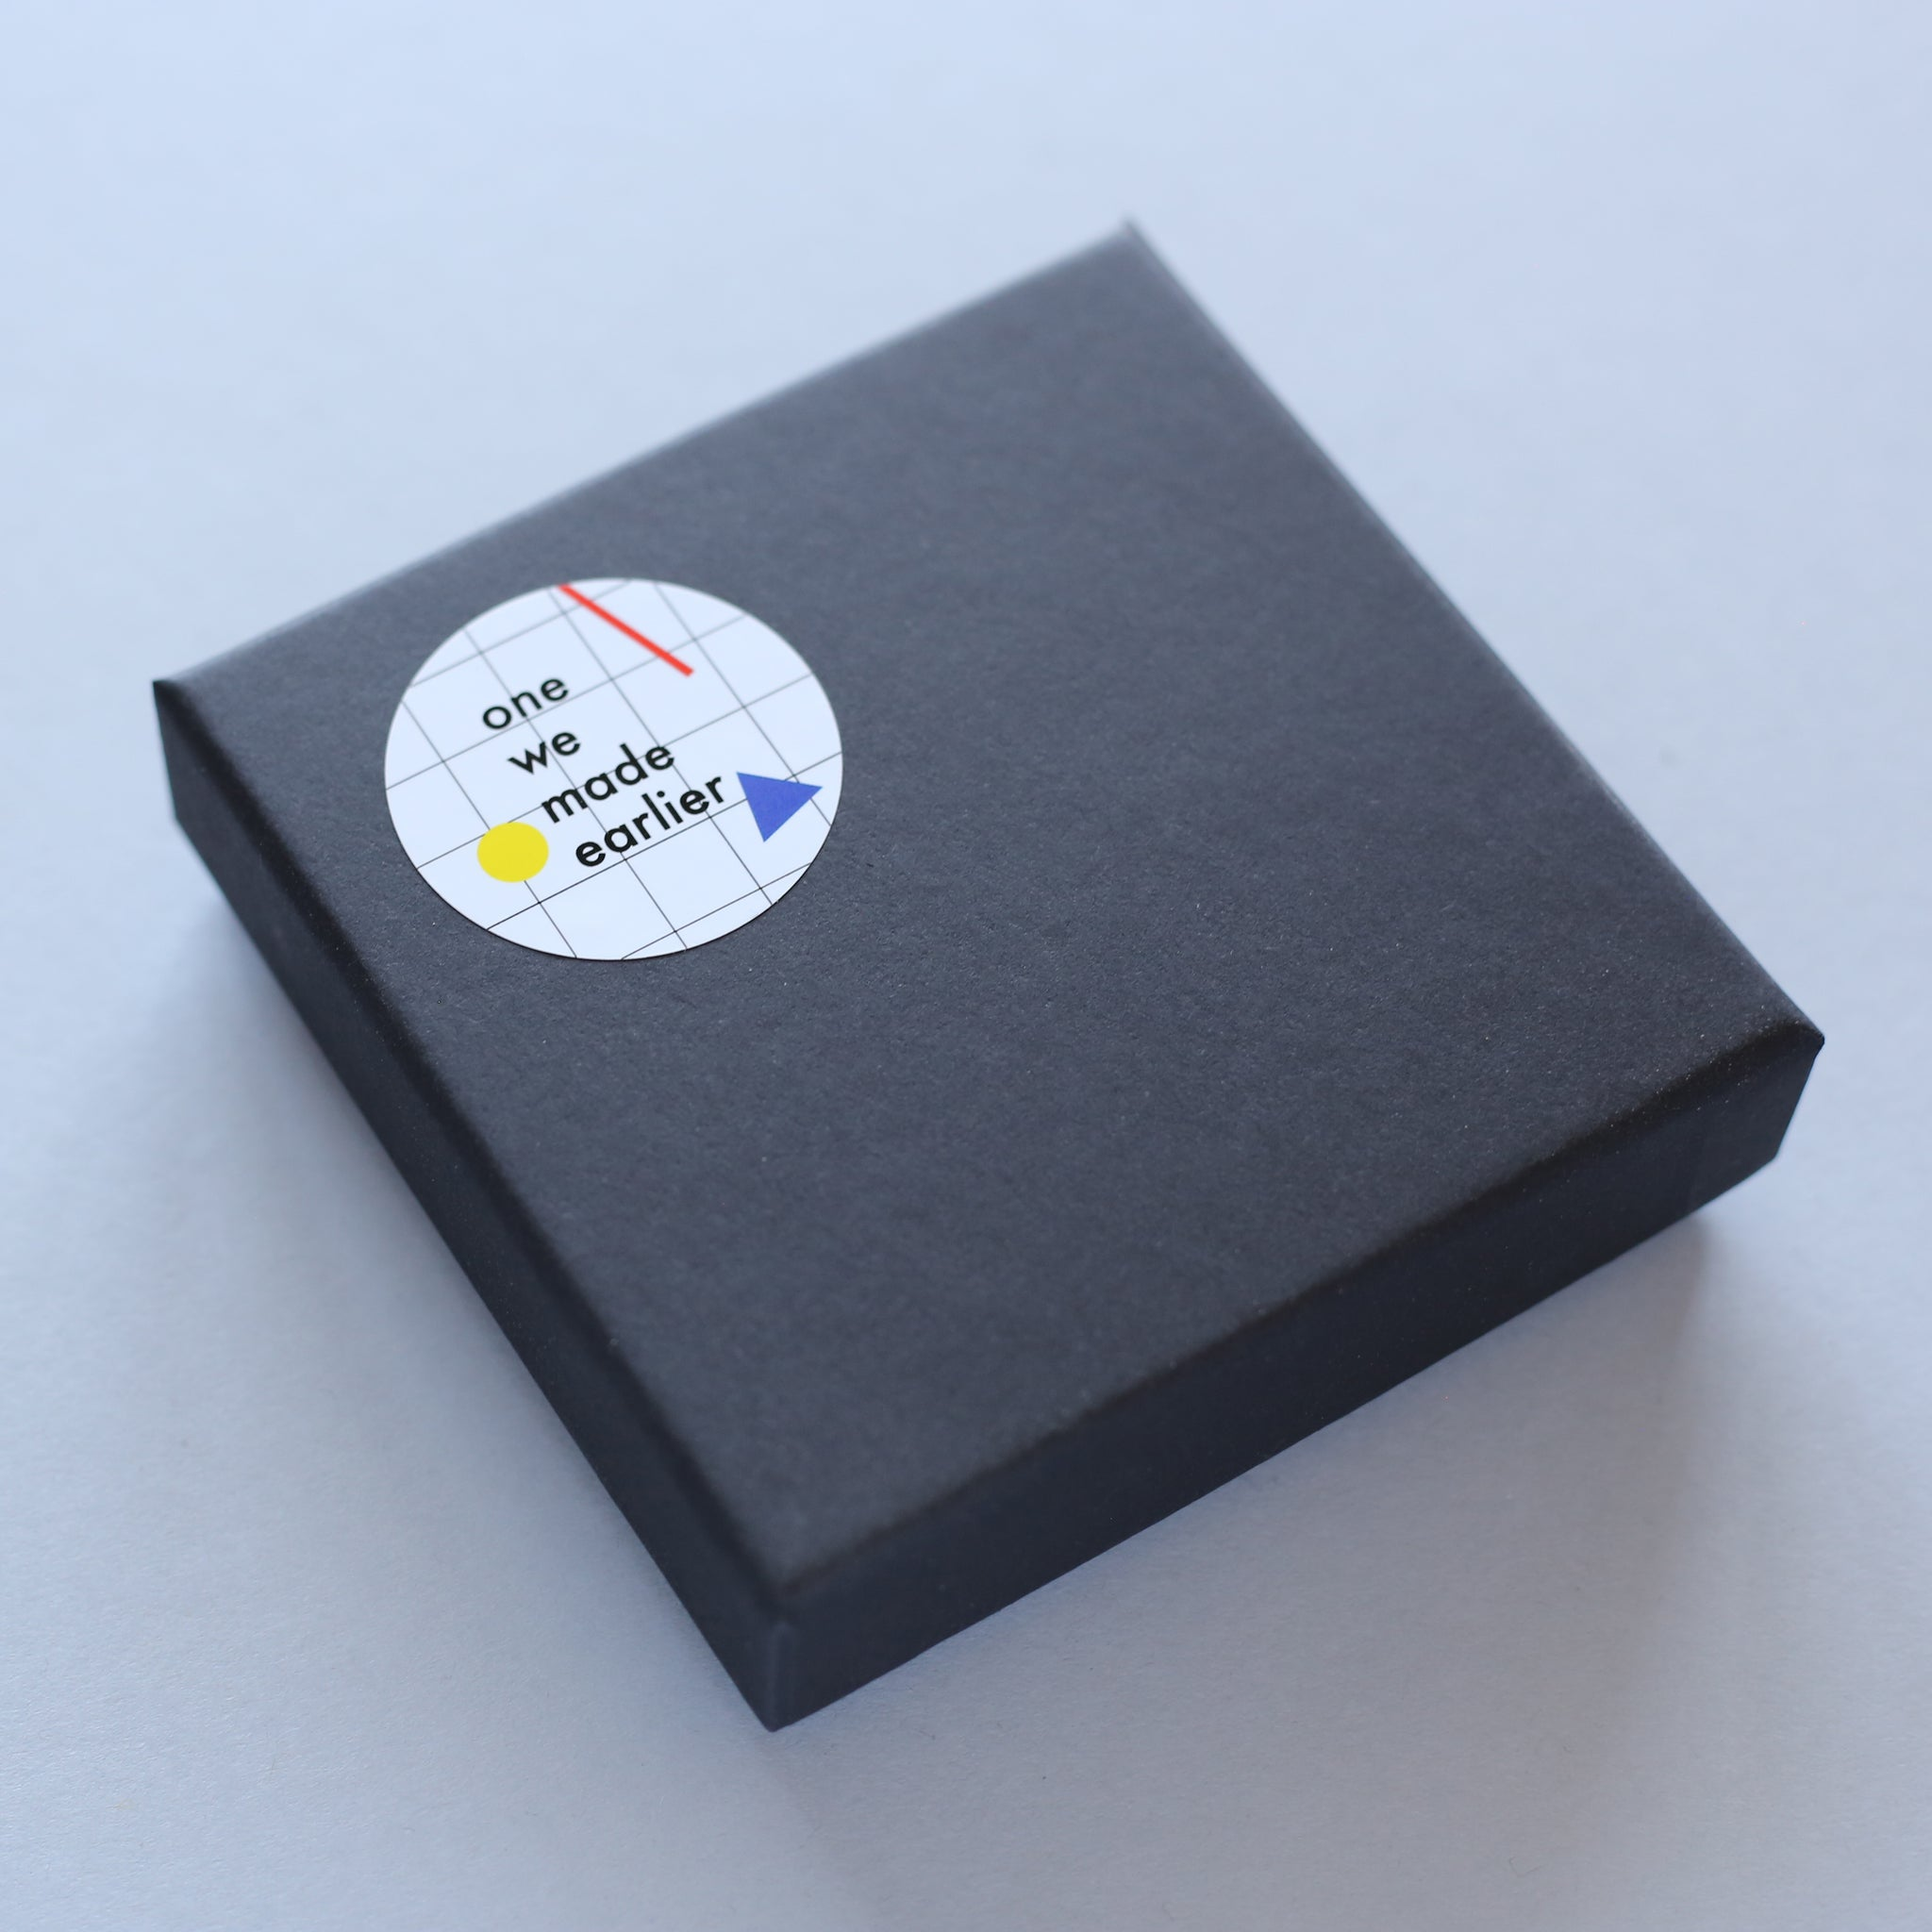 Packaging for Joy brooch by One We Made Earlier